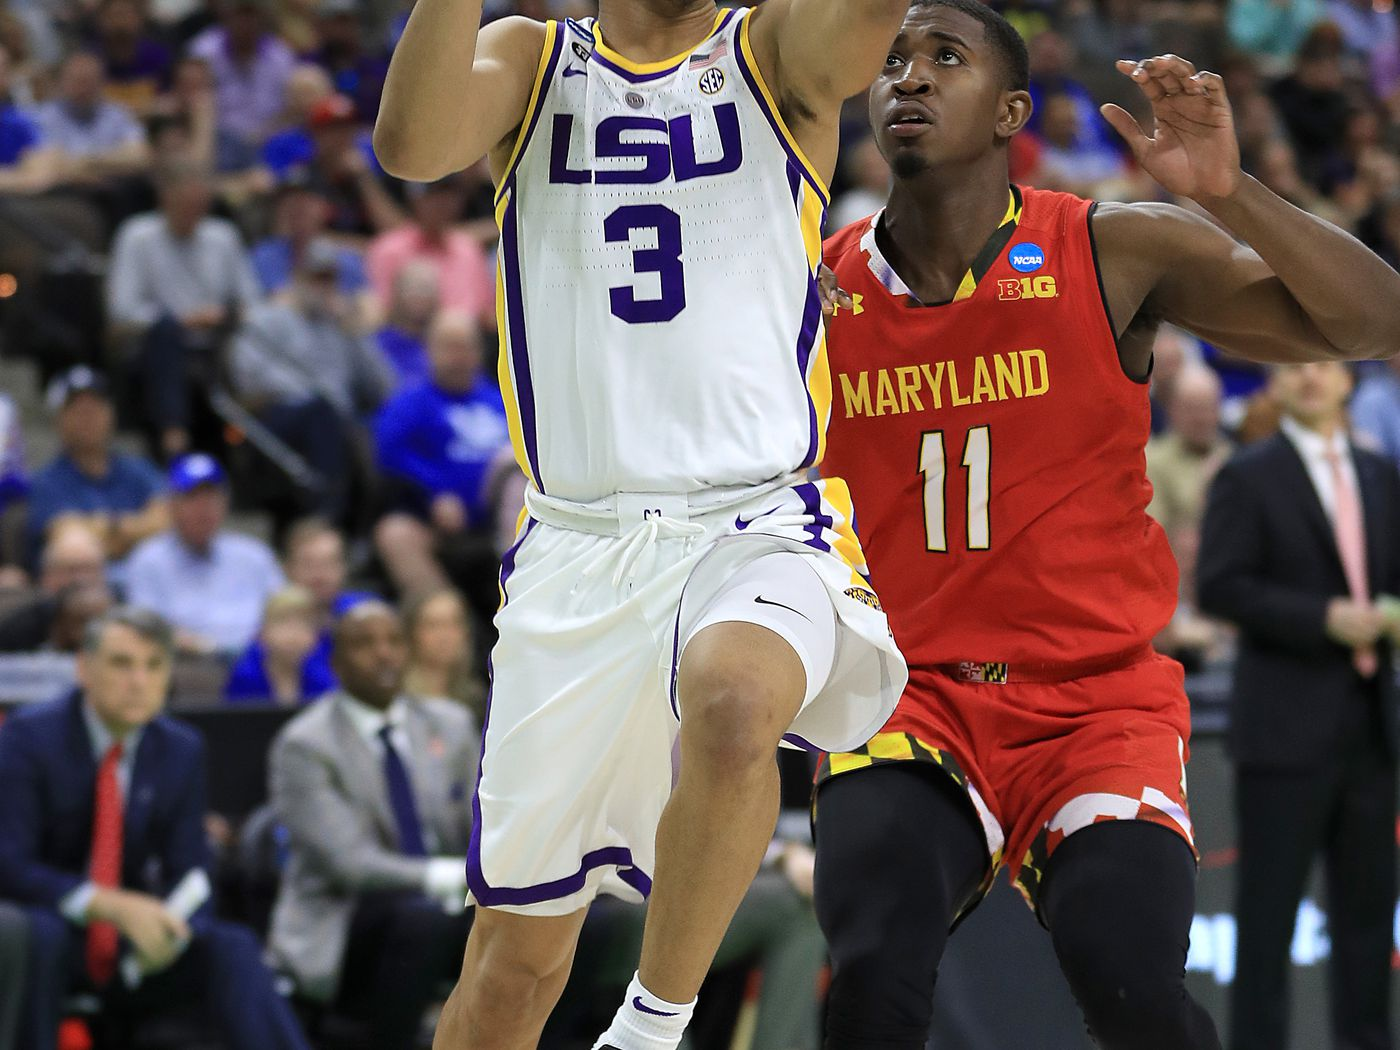 2019 NBA Draft scouting report: Tremont Waters - Peachtree Hoops